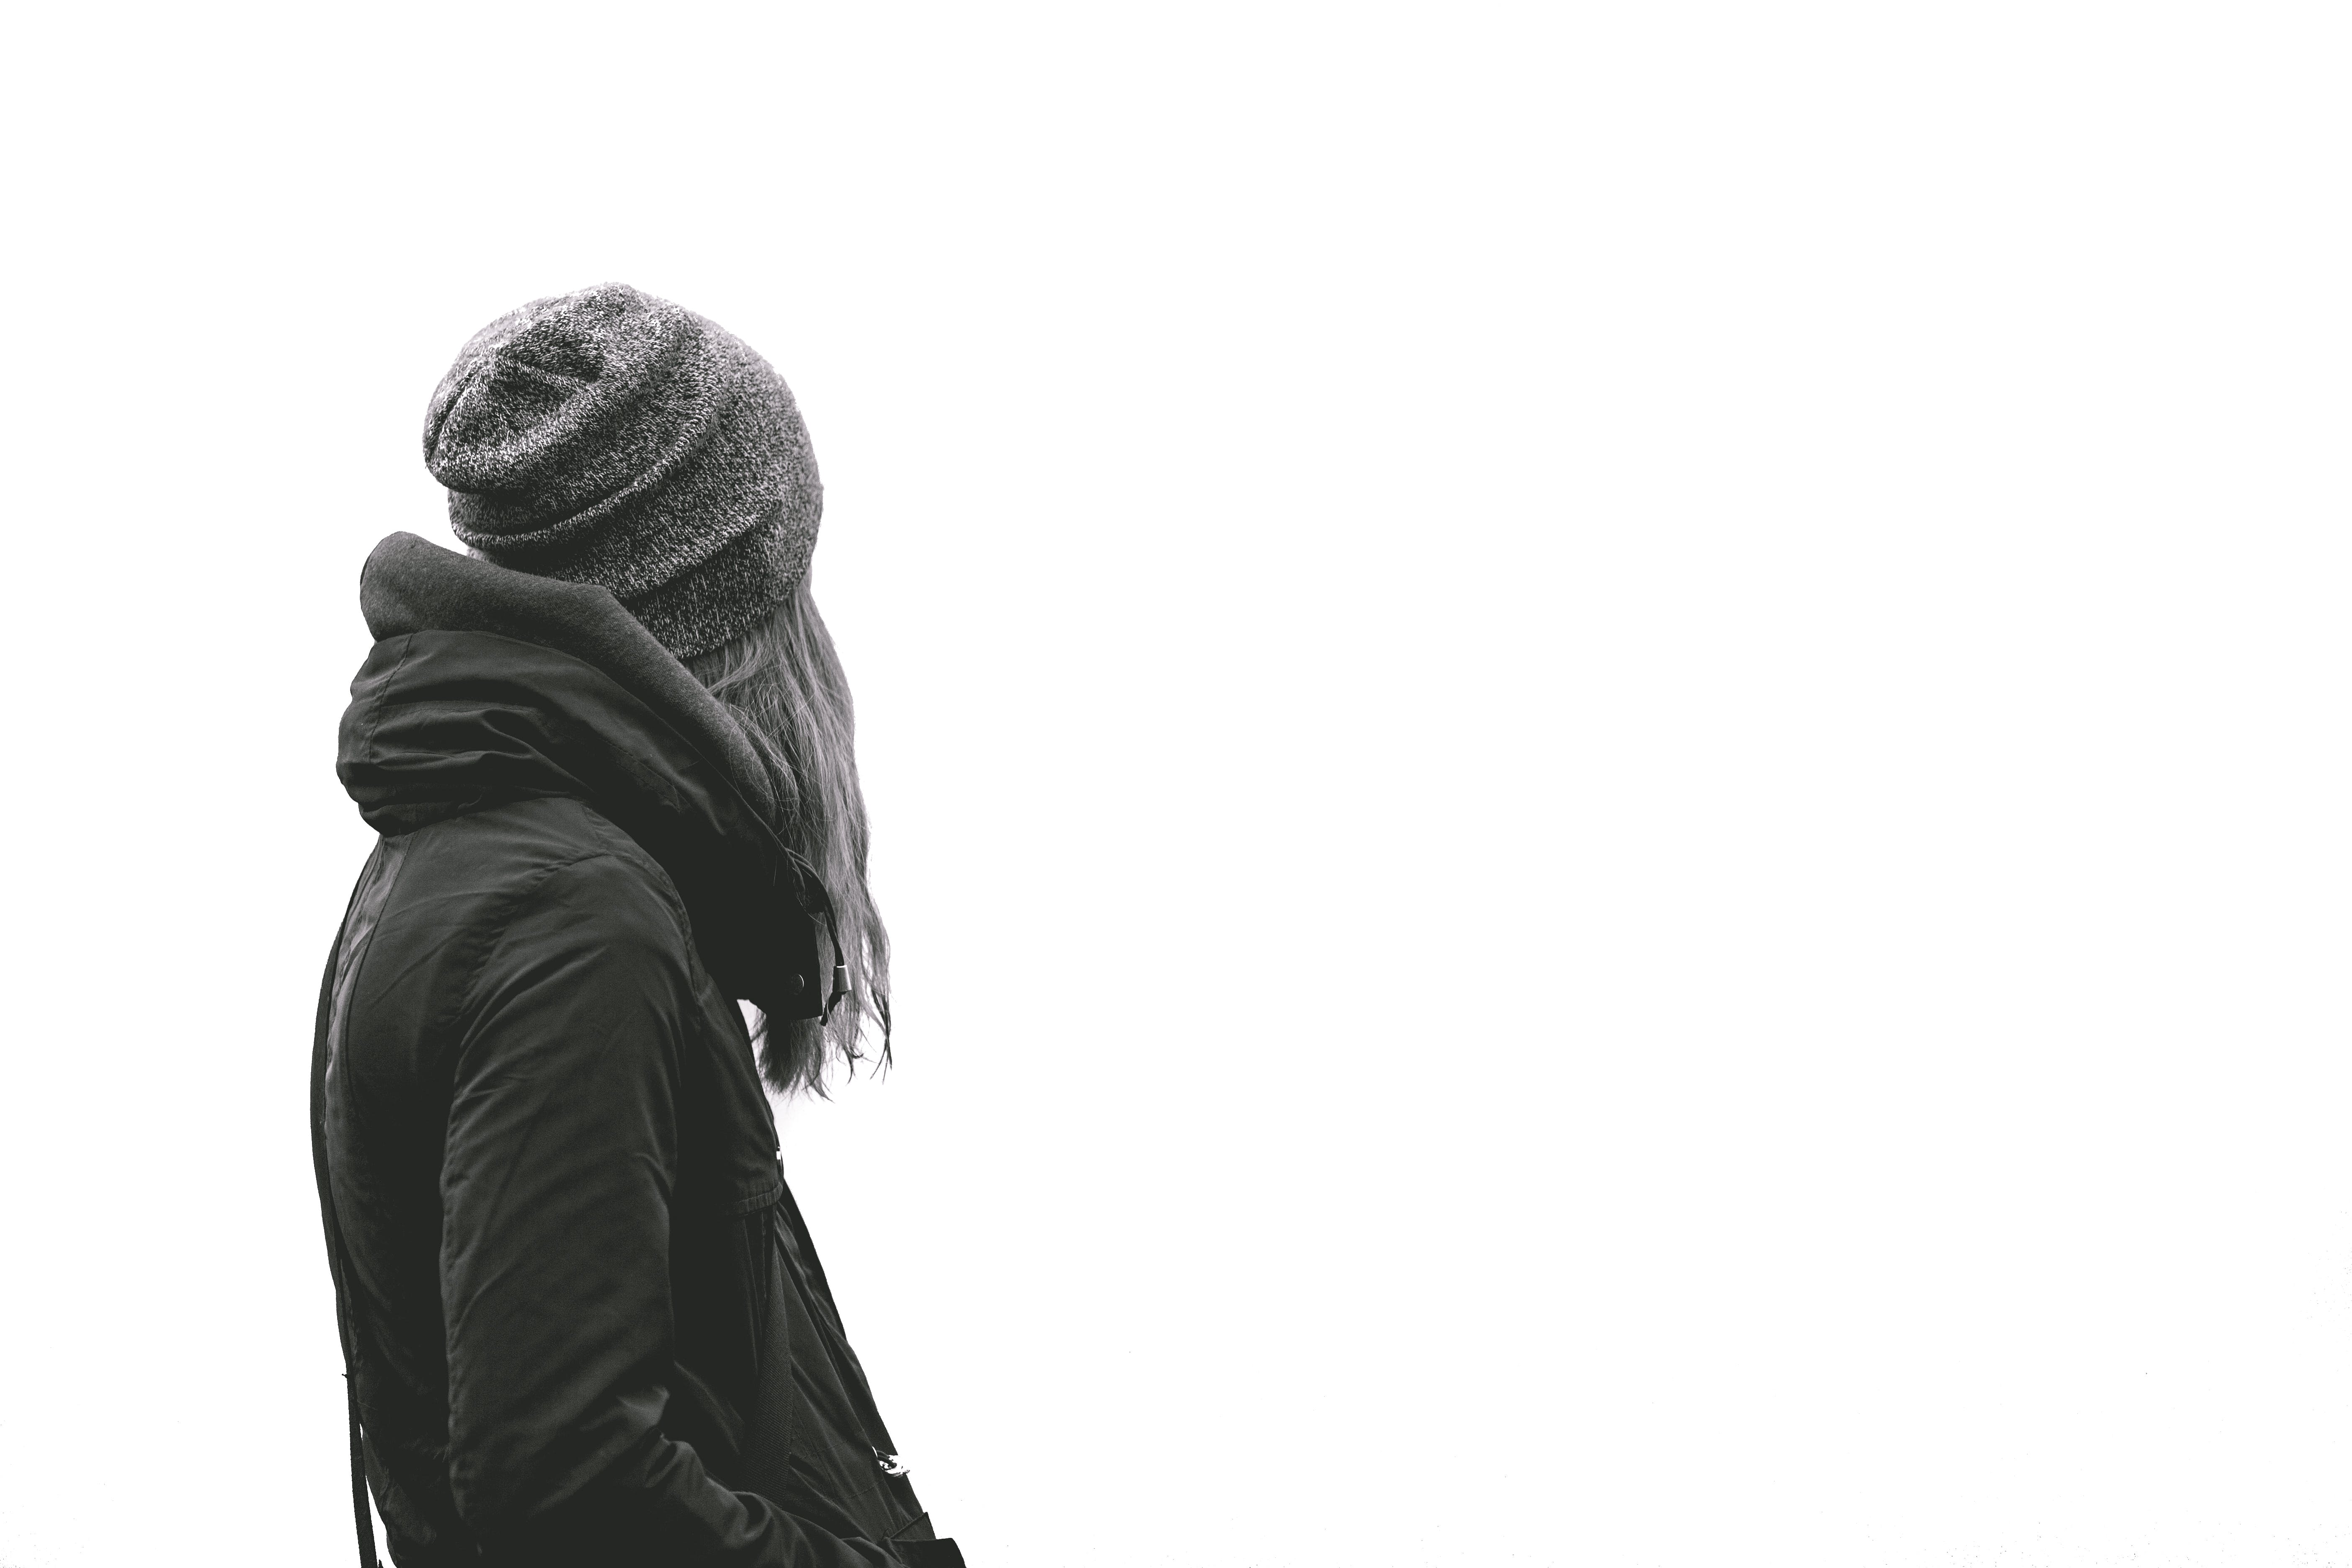 Woman Wearing Black Hoodie and Knit Cap